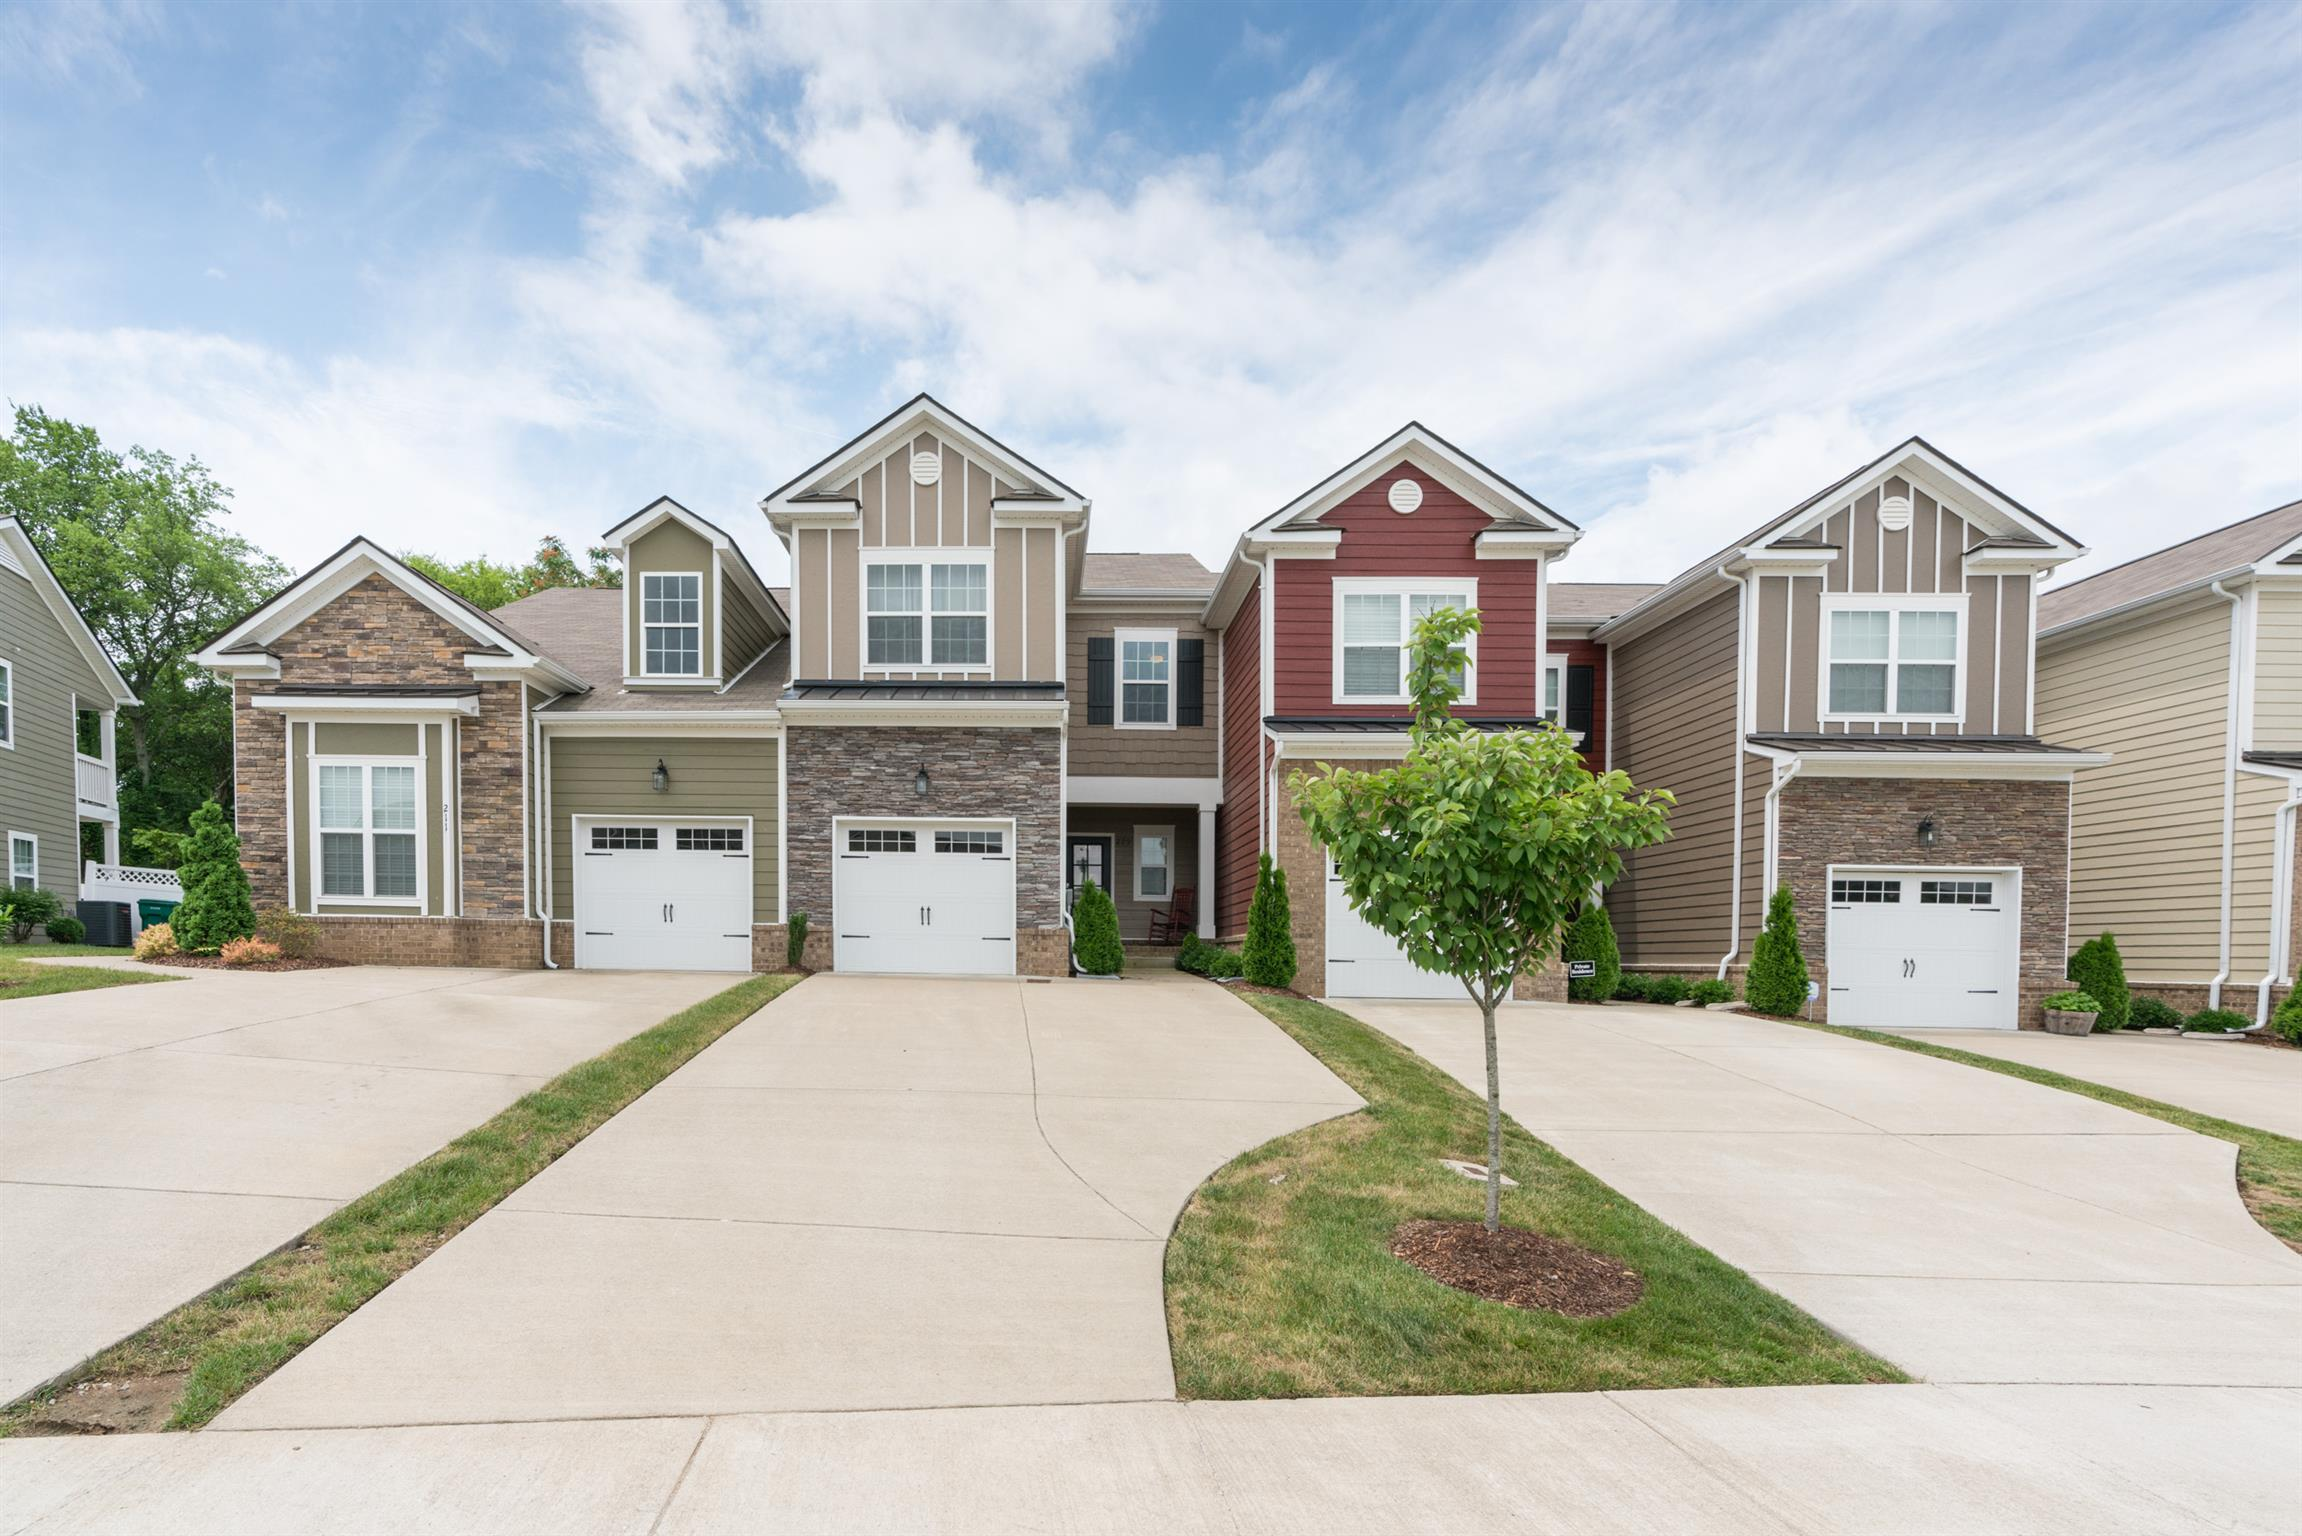 209 Shirebrook Cir, Spring Hill, Tennessee